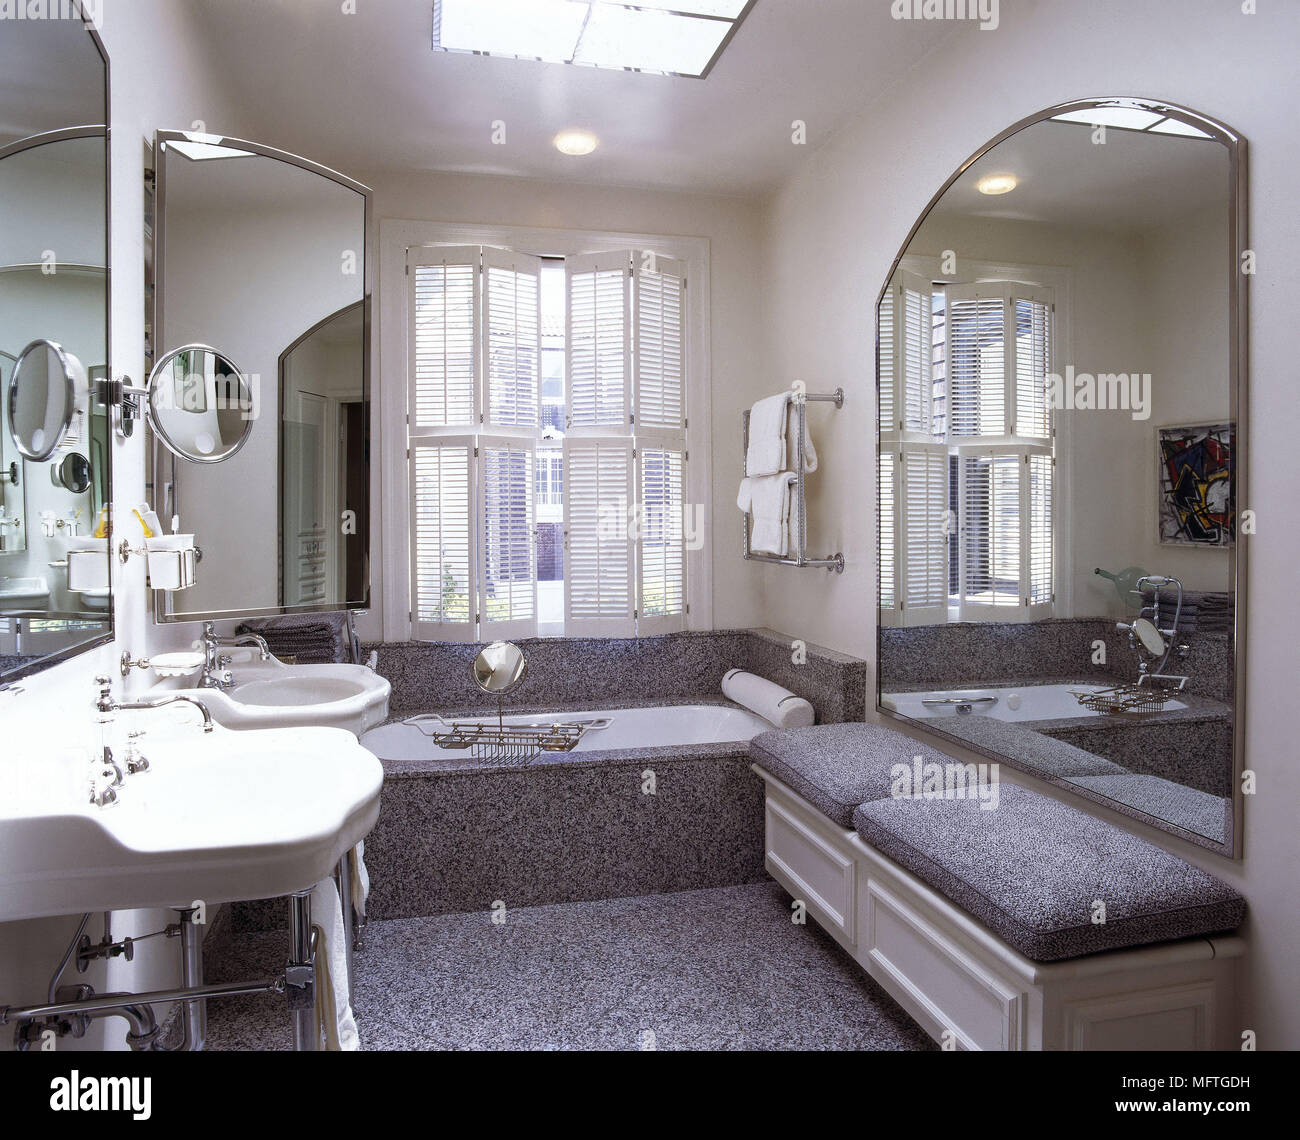 Outstanding Traditional Style Bathroom With Twin Victorian Style Unemploymentrelief Wooden Chair Designs For Living Room Unemploymentrelieforg